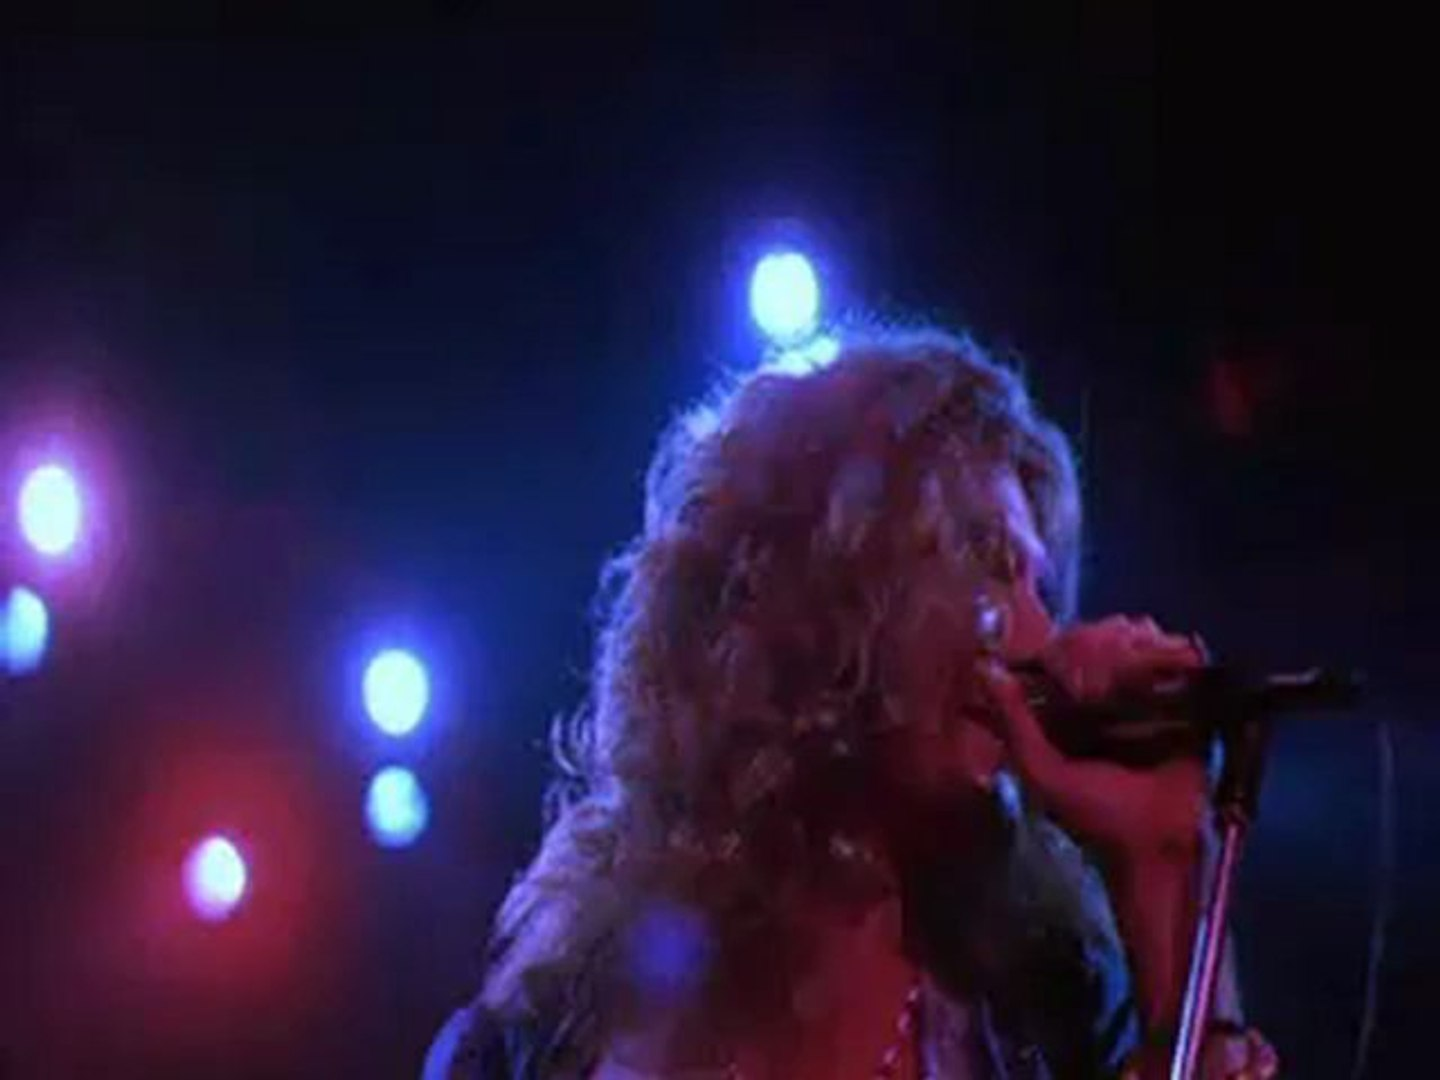 Nik The Greek - Led Zeppelin - Stairway To Heaven - From Film The Song Remains The Same